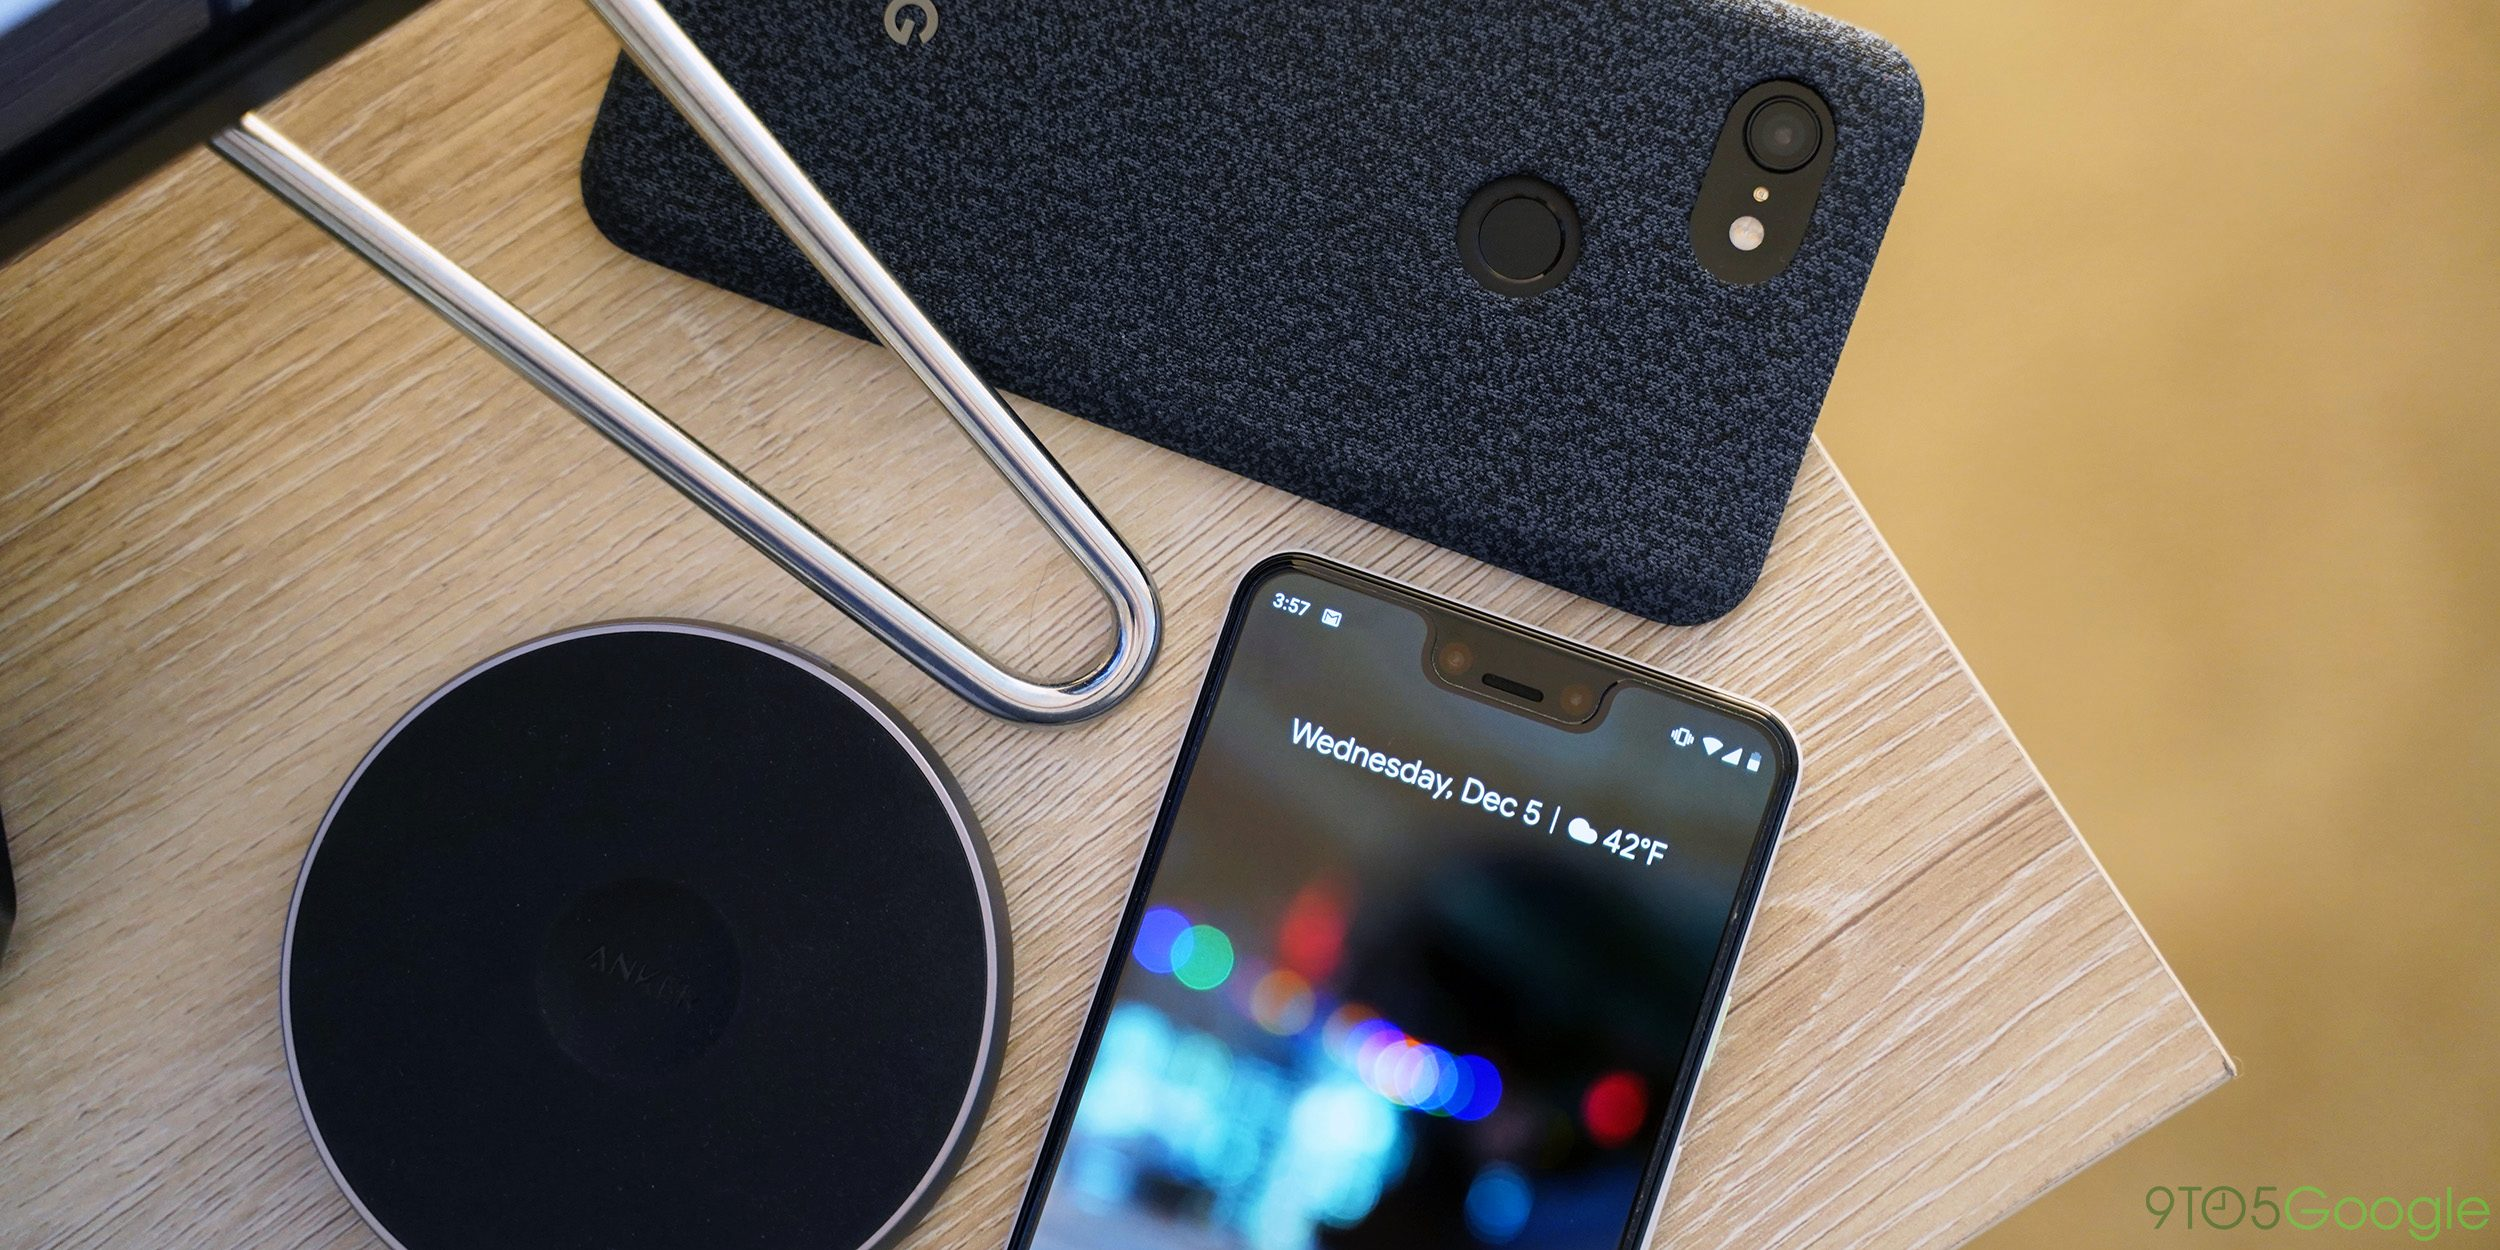 Google Store and Google Fi discount Pixel 3, Pixel 3 XL by $150 off